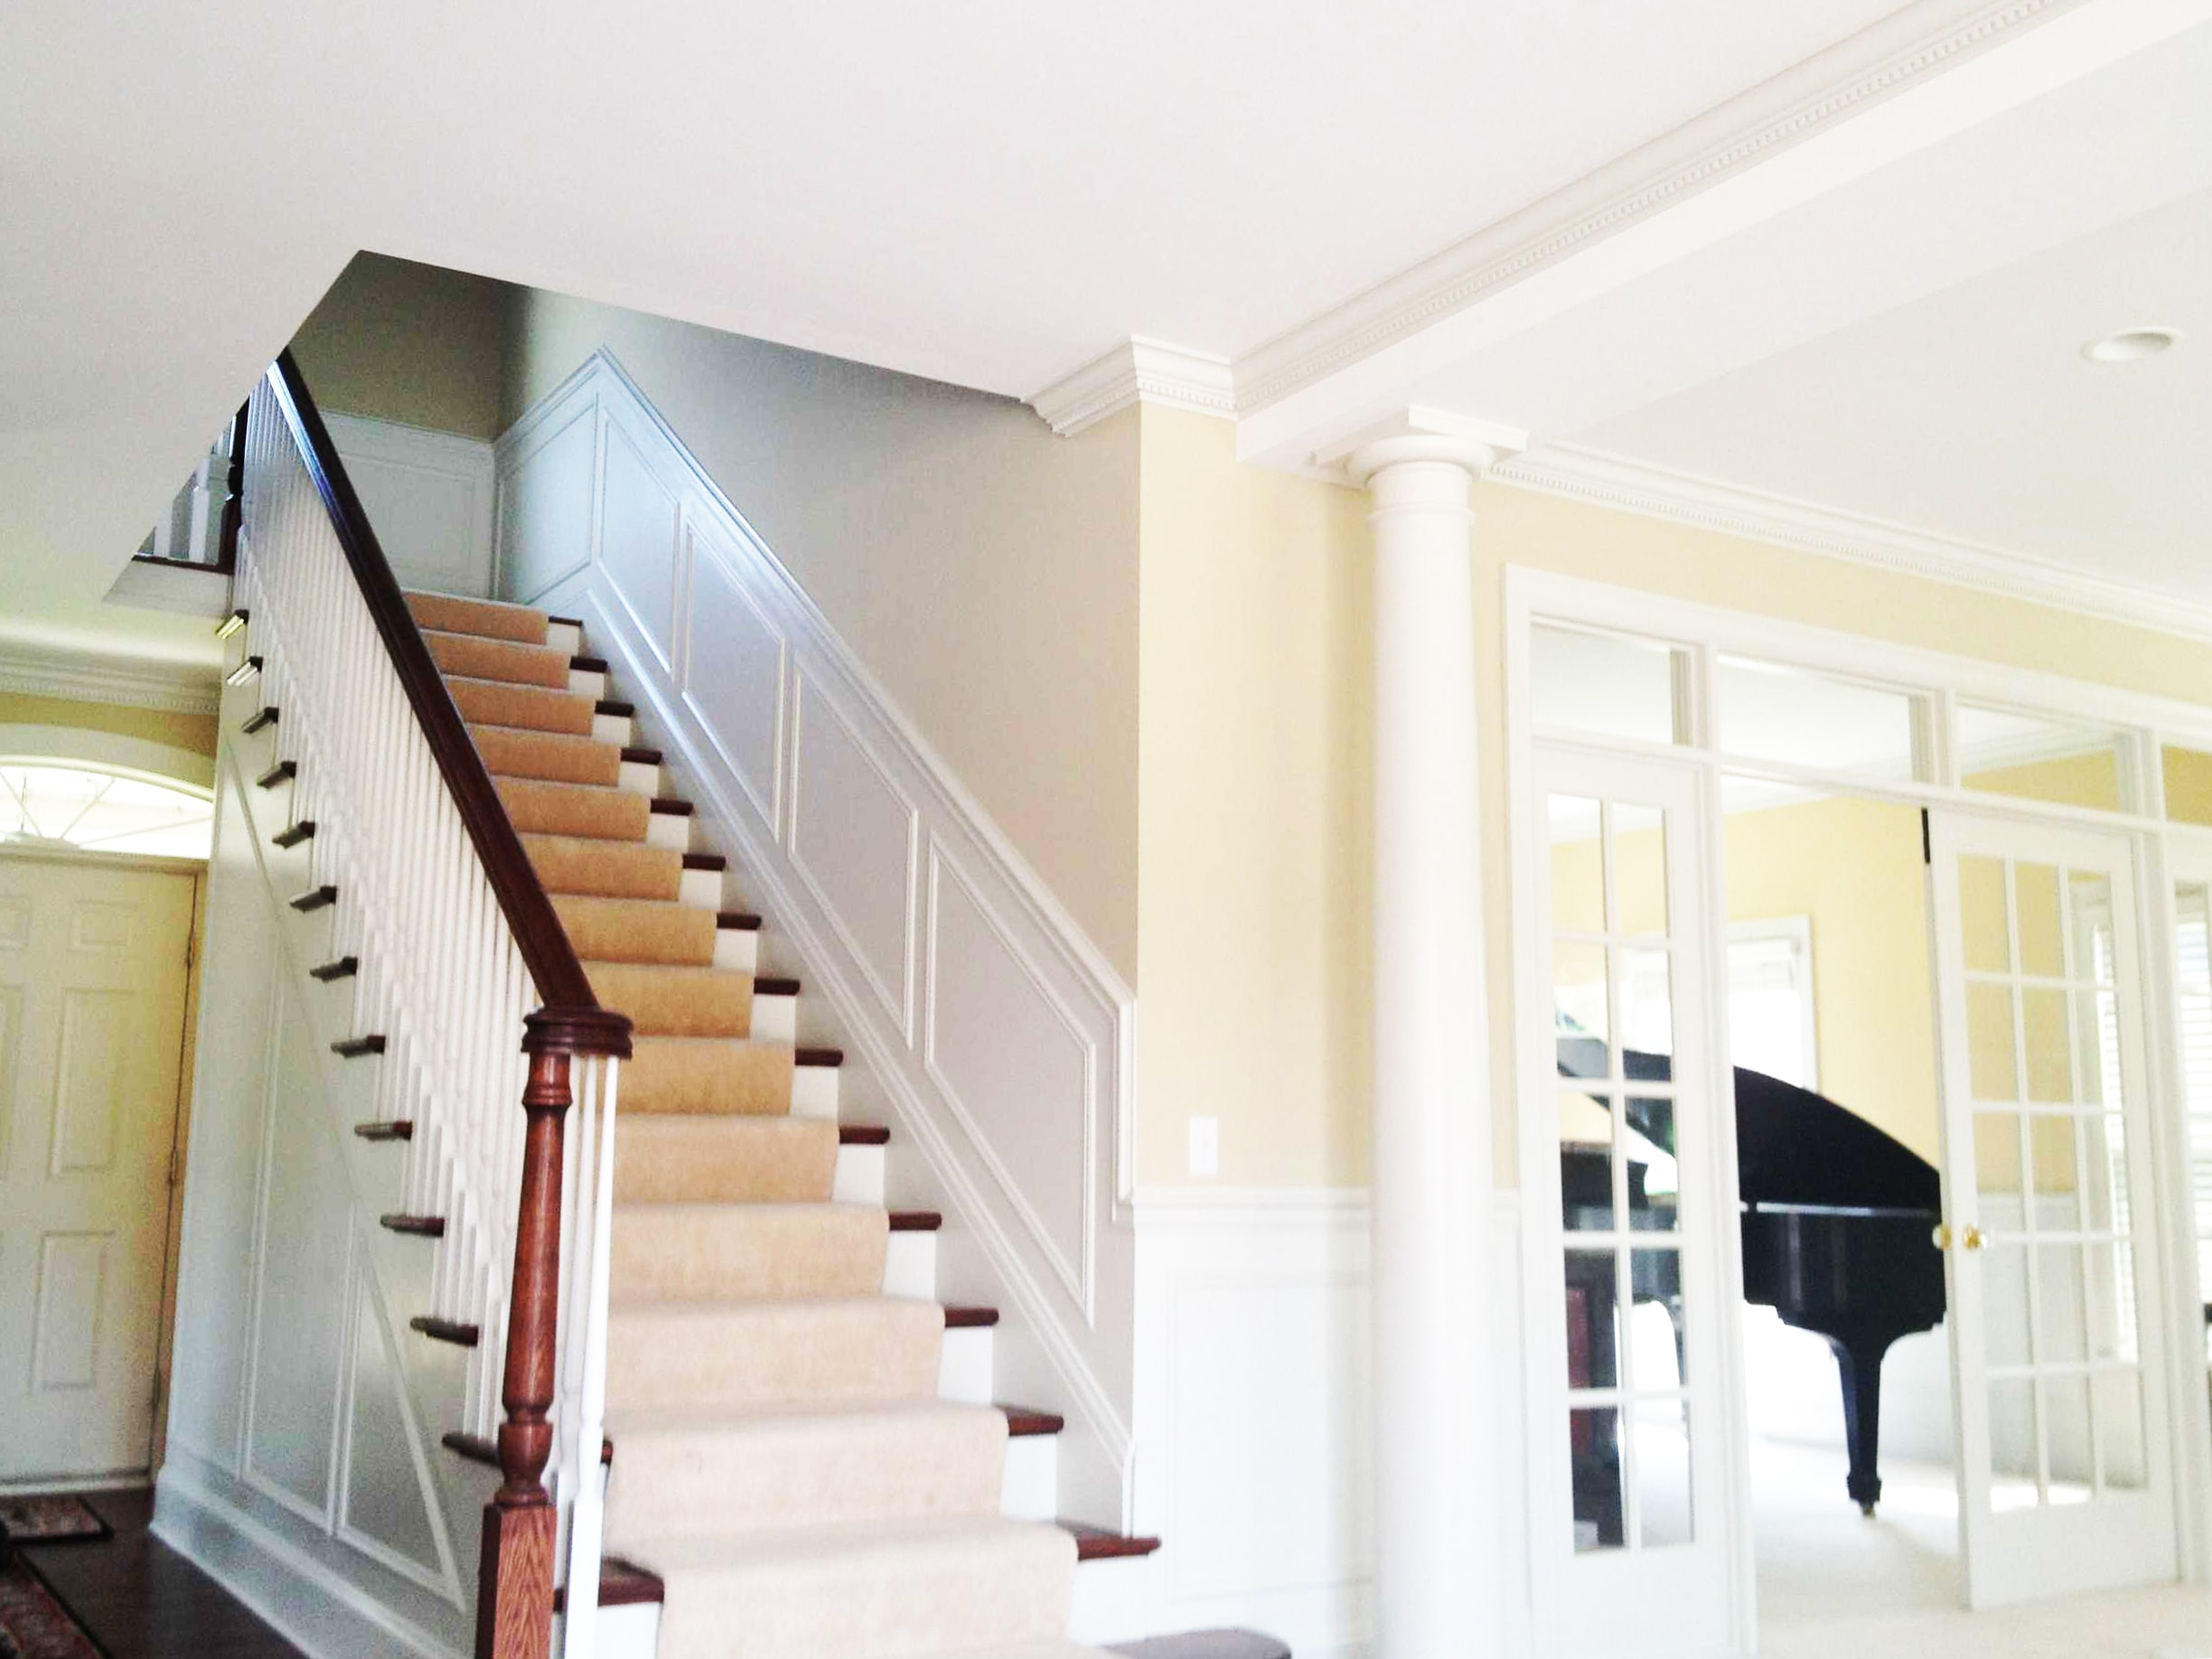 Refinished Staircase Using Dark Hardwood and Carpet and French Doors Going into Bonus Music Room